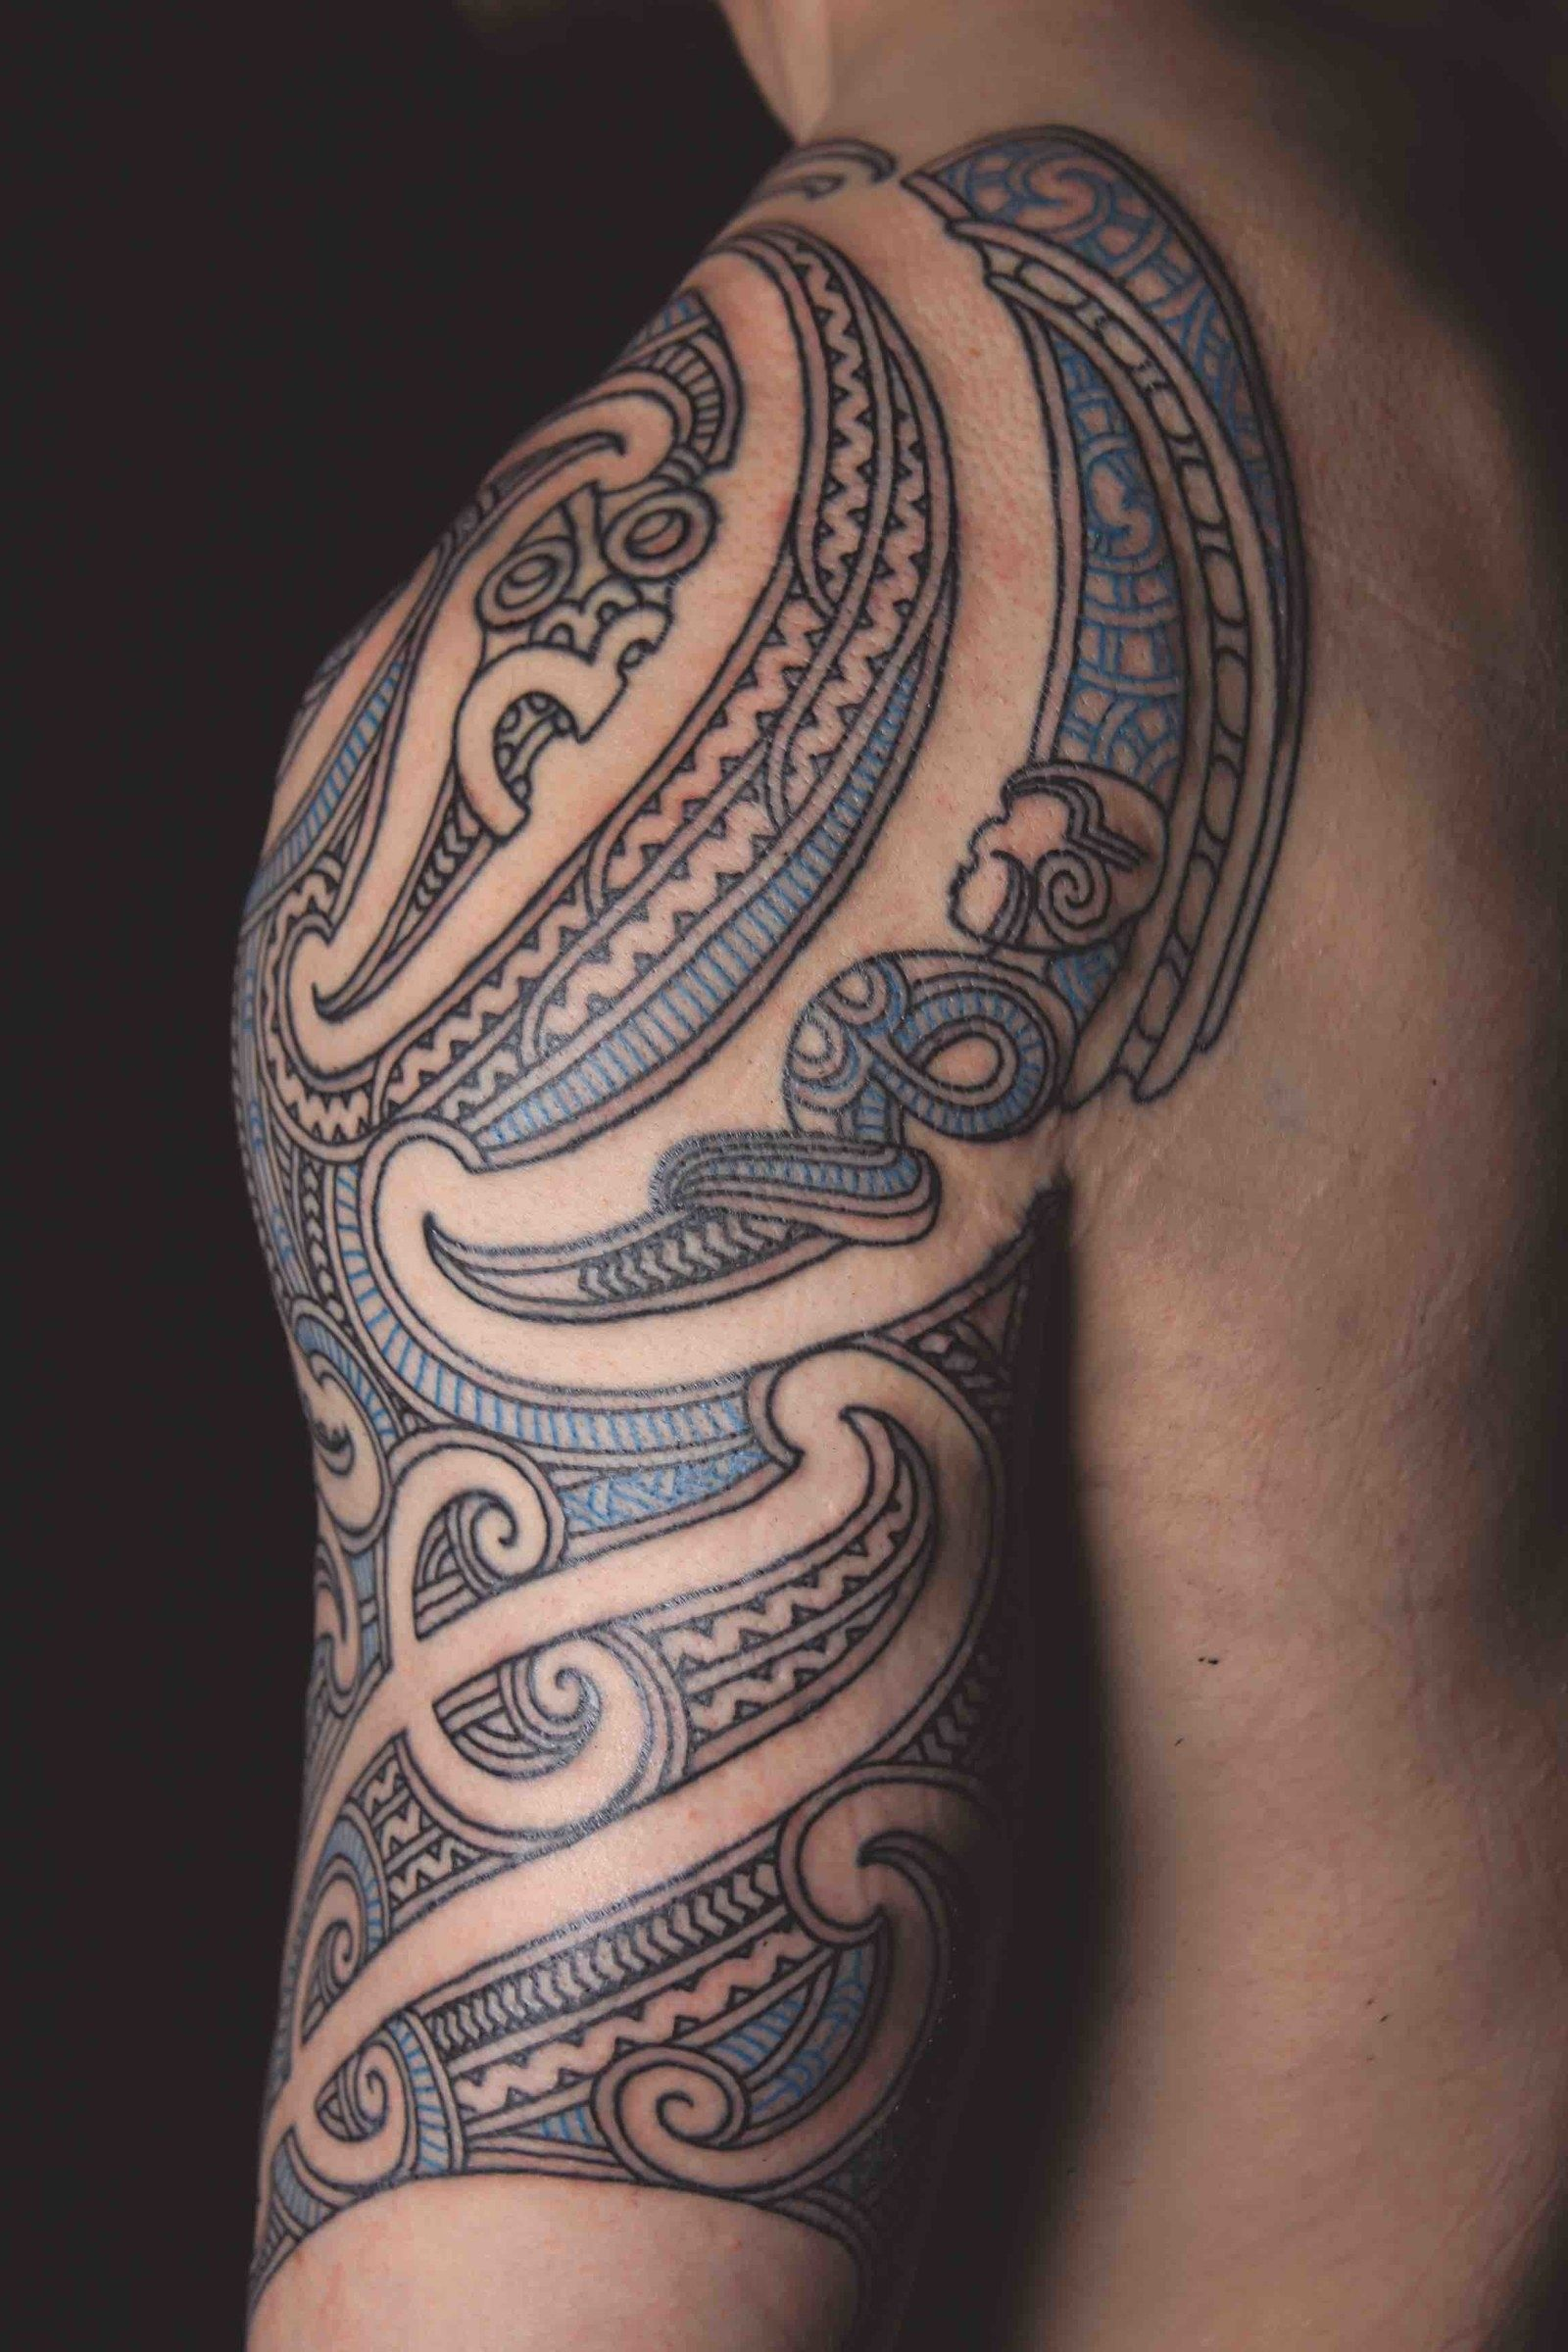 Can You Get Into Heaven With Tattoos 15 Facts About Classic Tattoos That Will Change The Way You Look At Them Sleeve Tattoos Japanese Tattoo Classic Tattoo